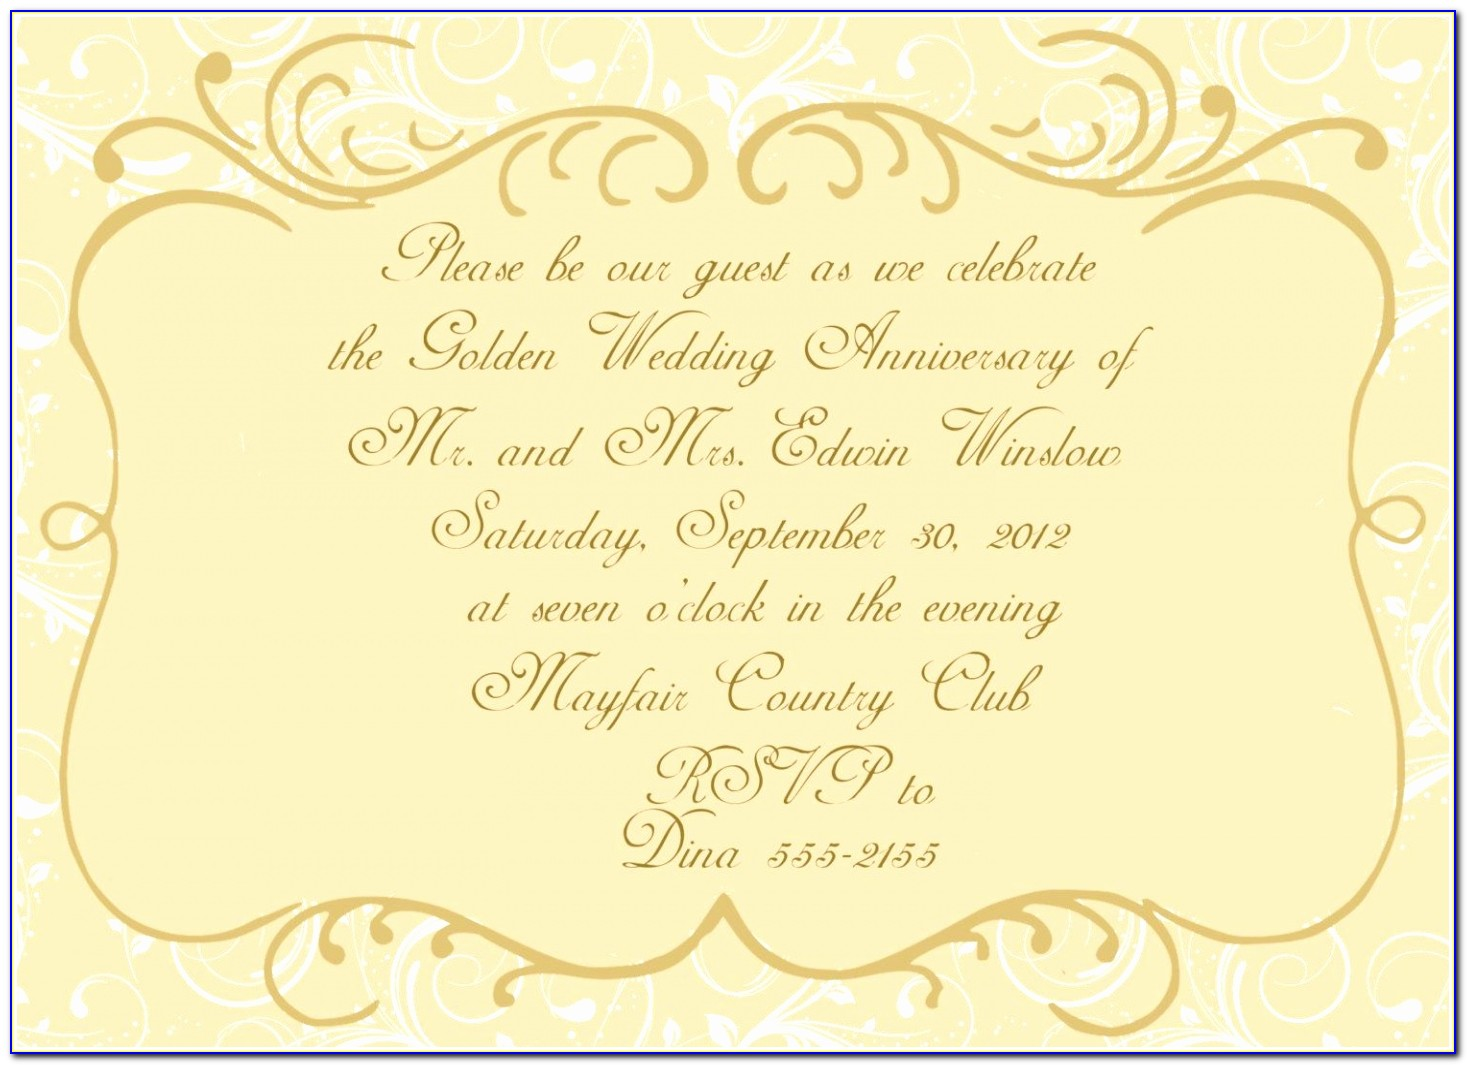 Anniversary Invitations Golden Wedding Anniversary Free Golden Anniversary Invitation Templates Lovely Pdf Word Excel Template Eoyre